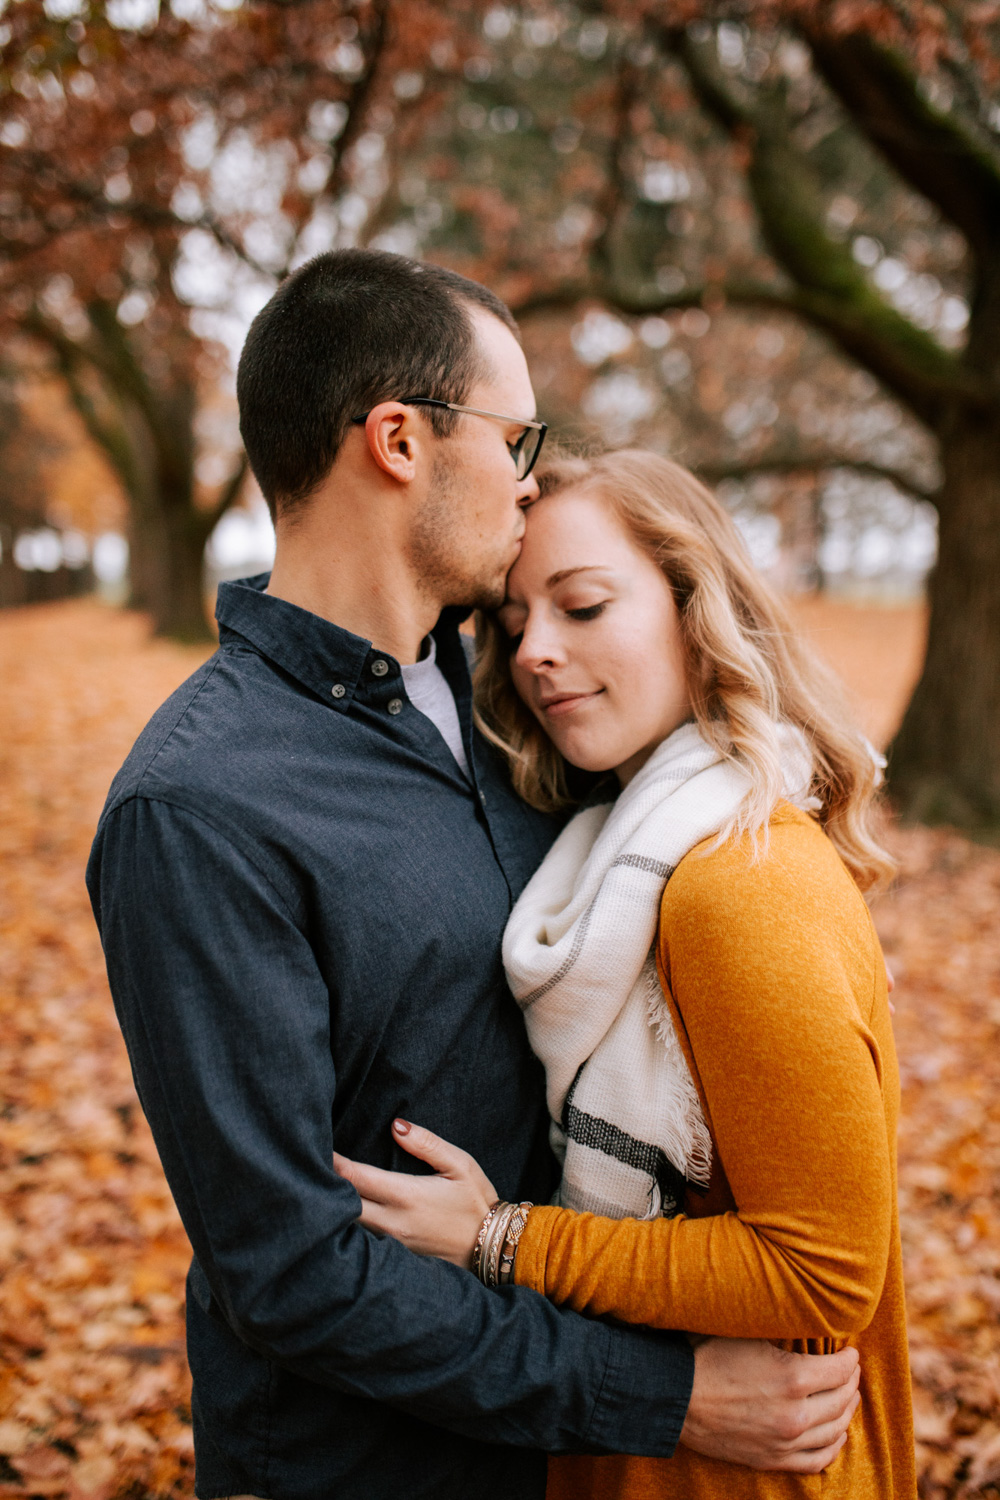 Engagement-Photographer-Lafayette-Indiana-64.jpg